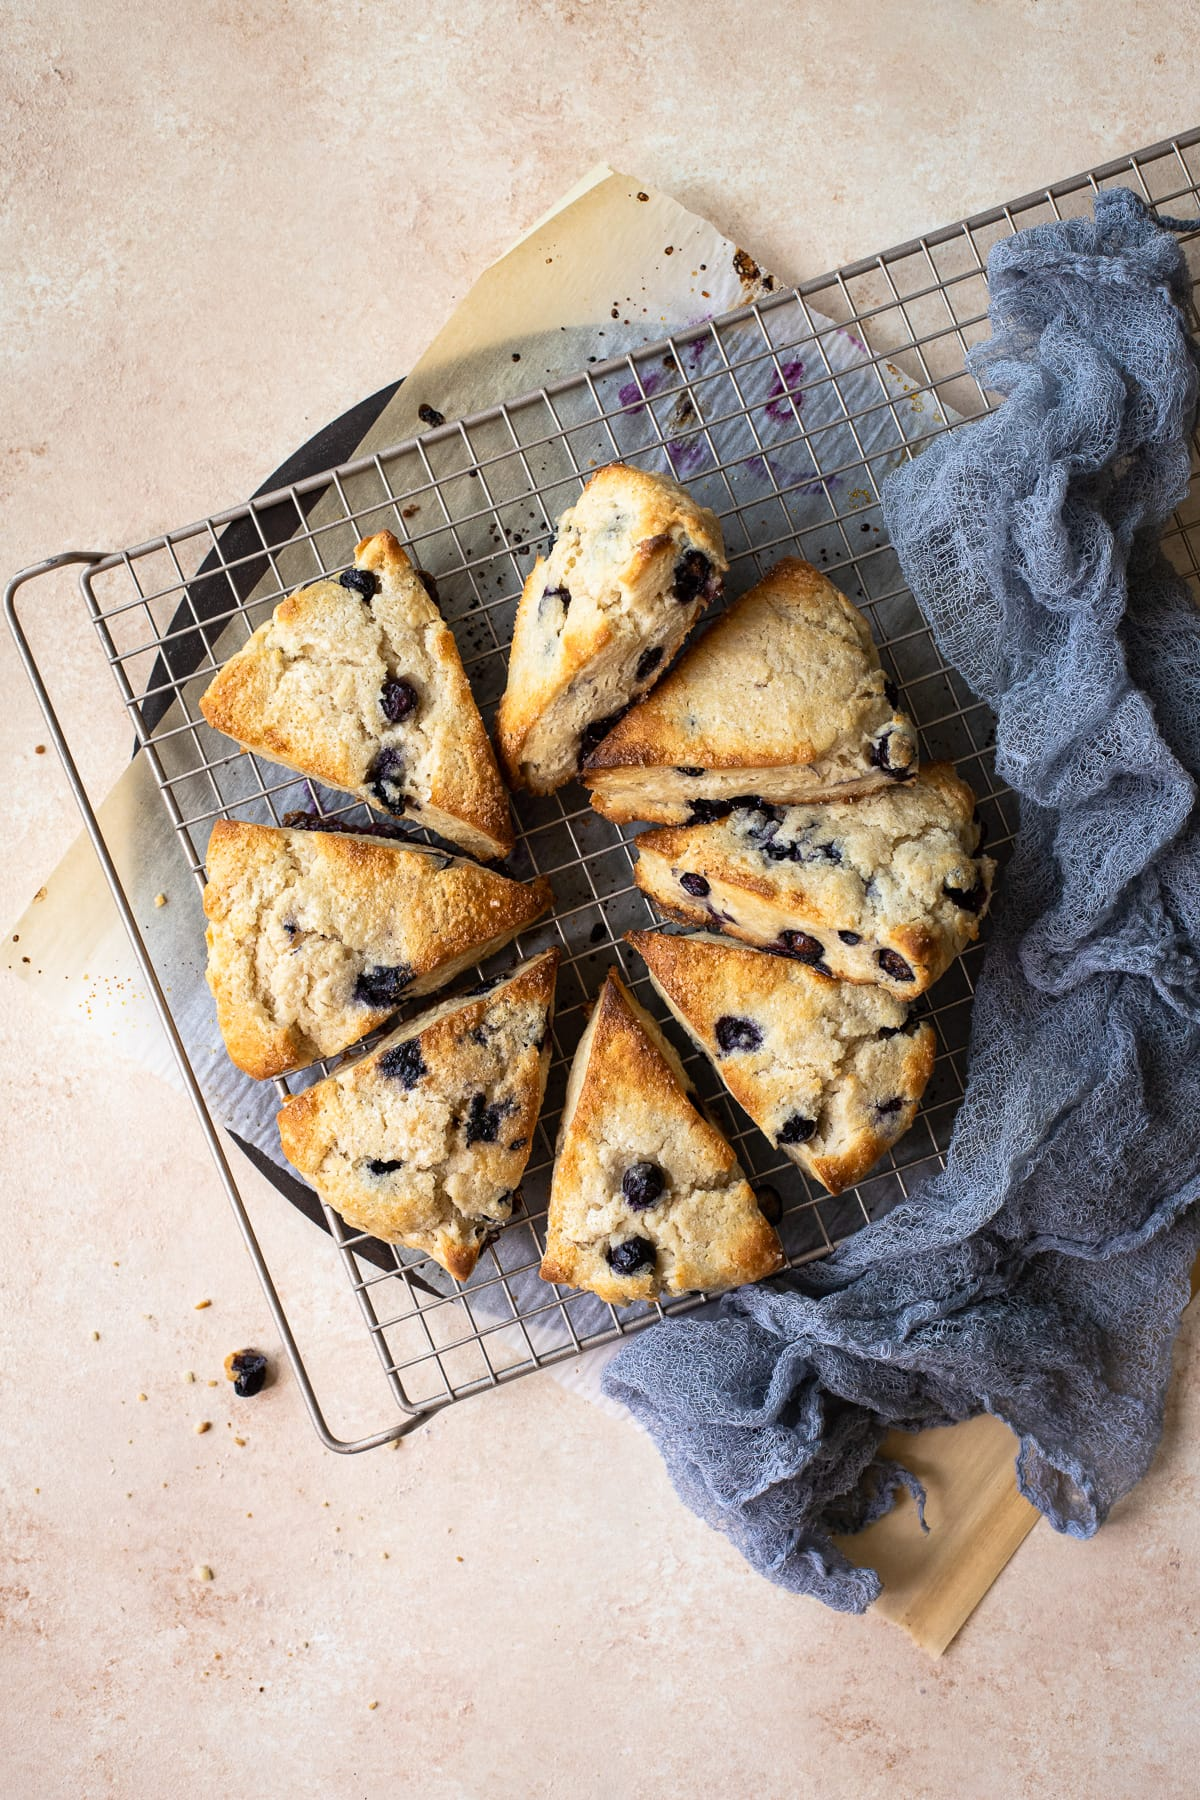 Blueberry scones cooling on a wire rack.